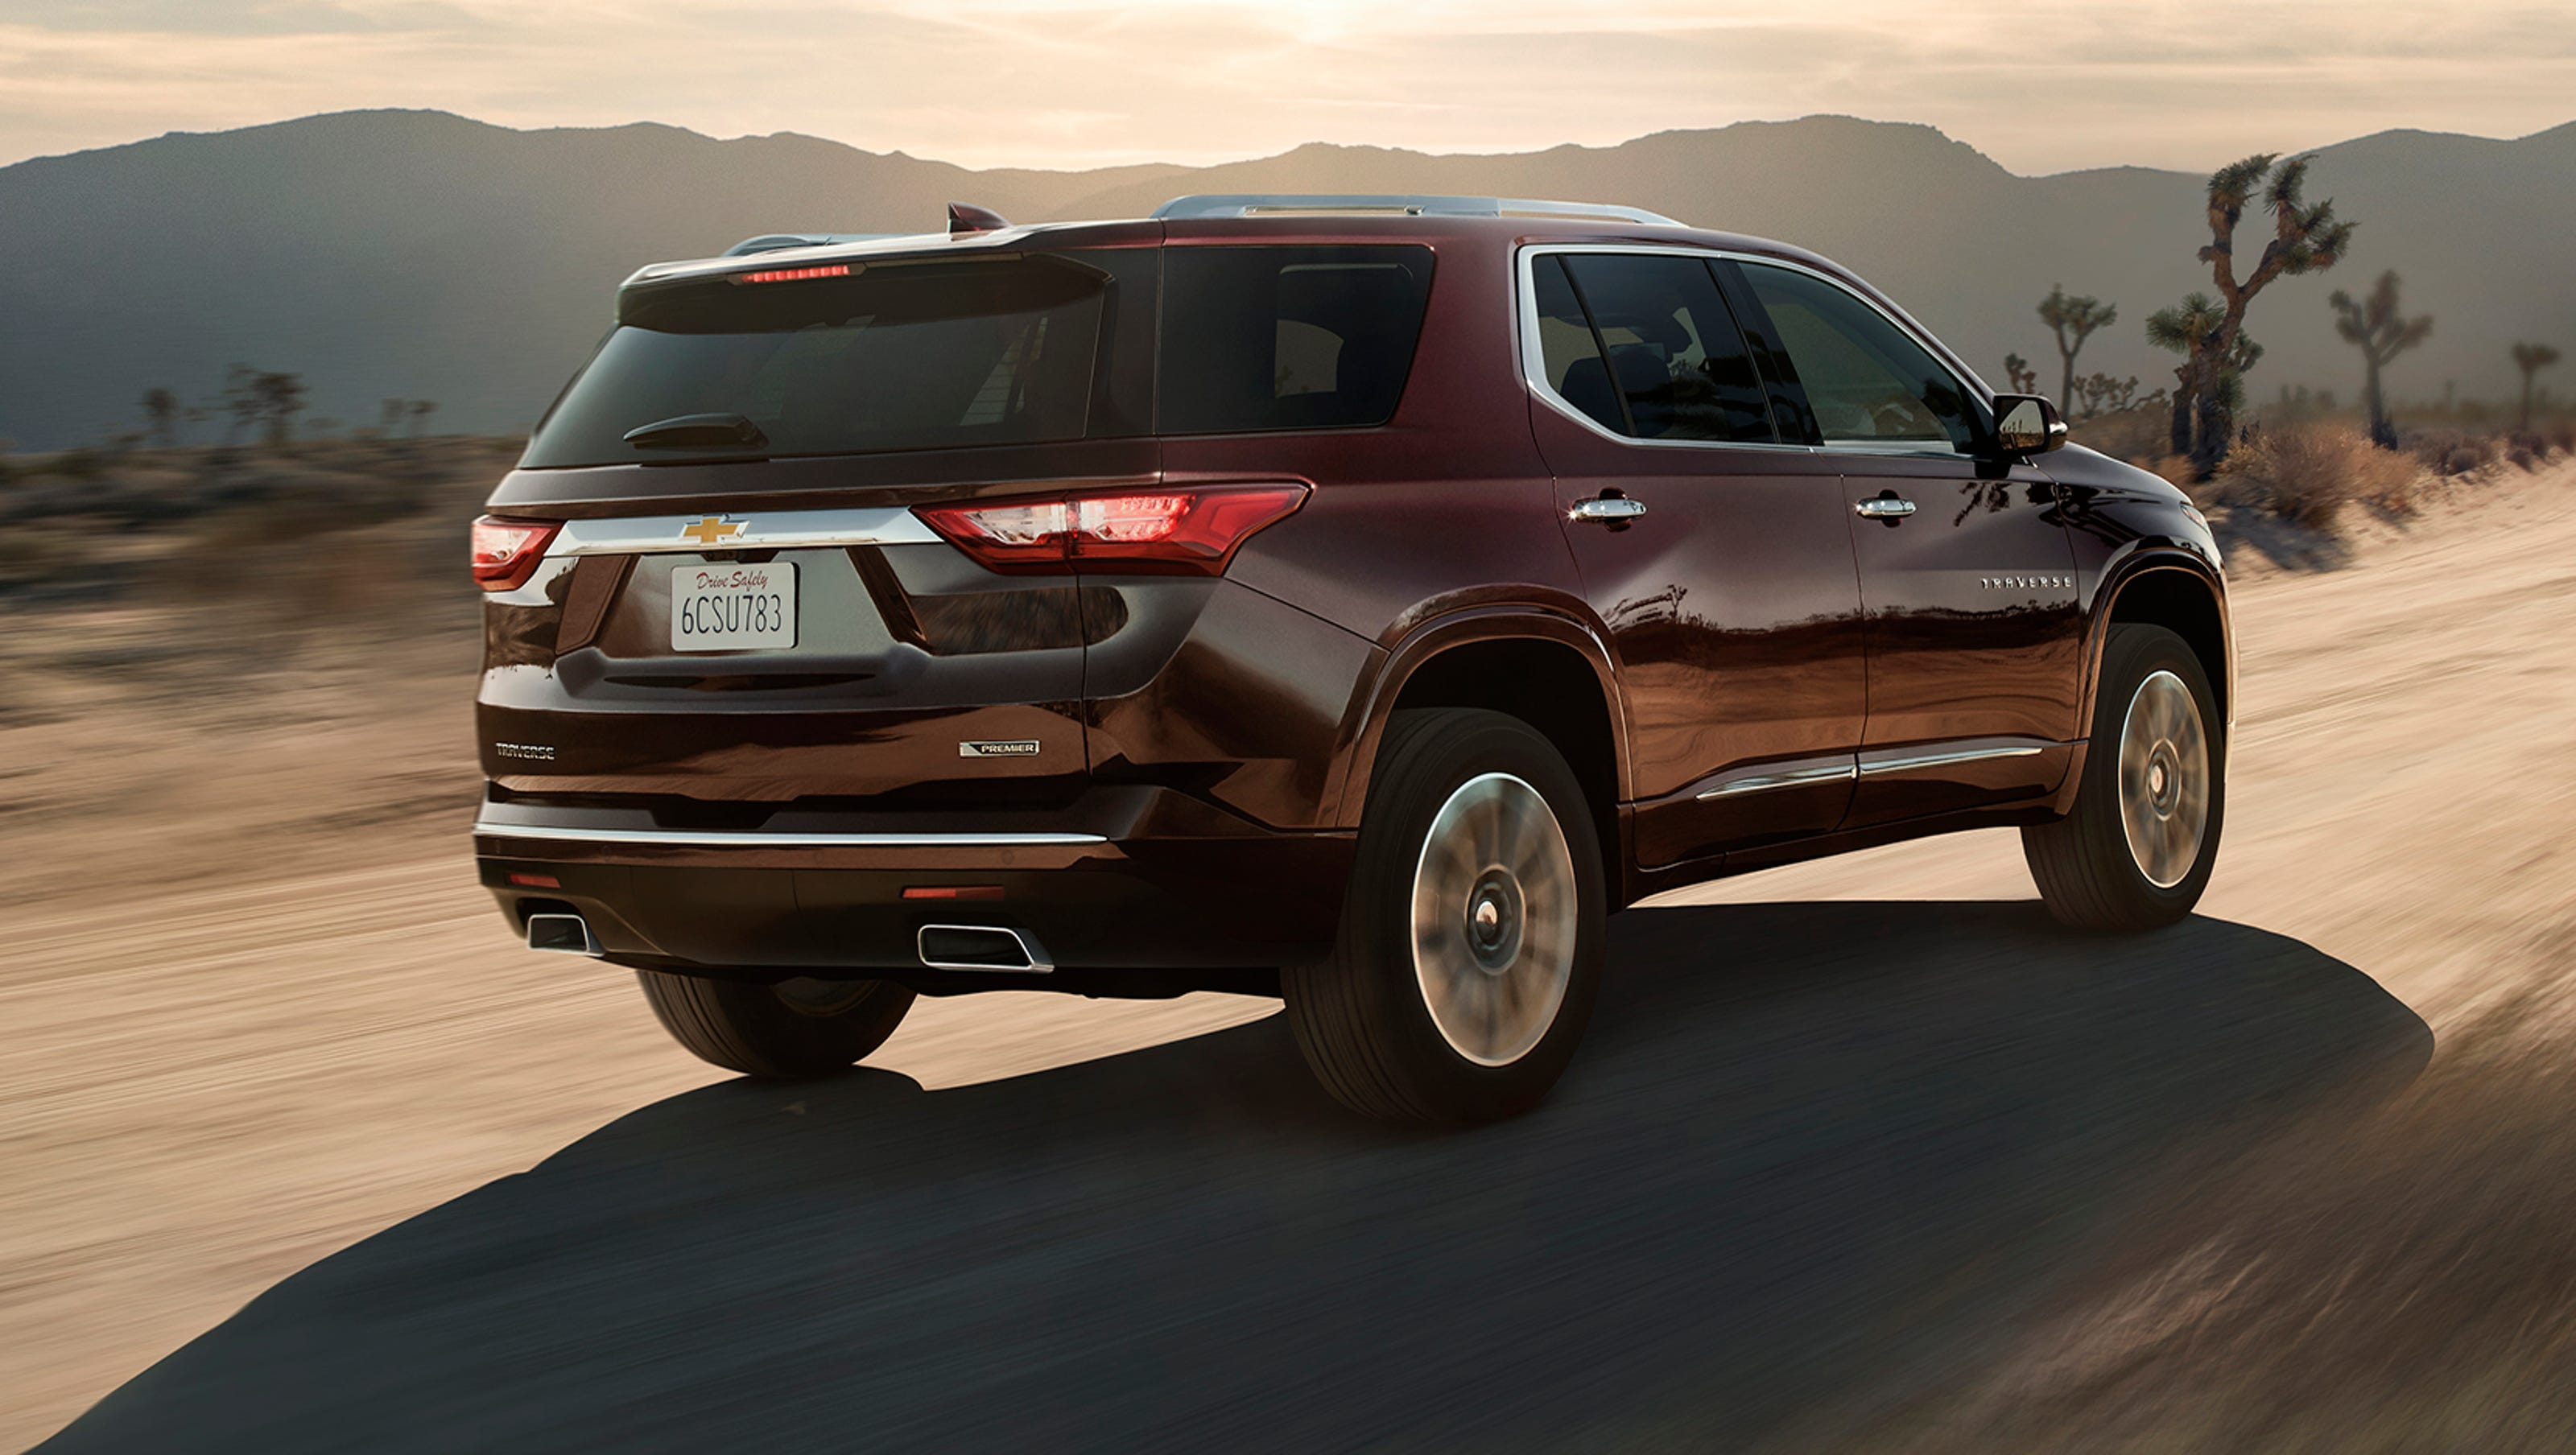 Chevy casts net for new Traverse SUV ers